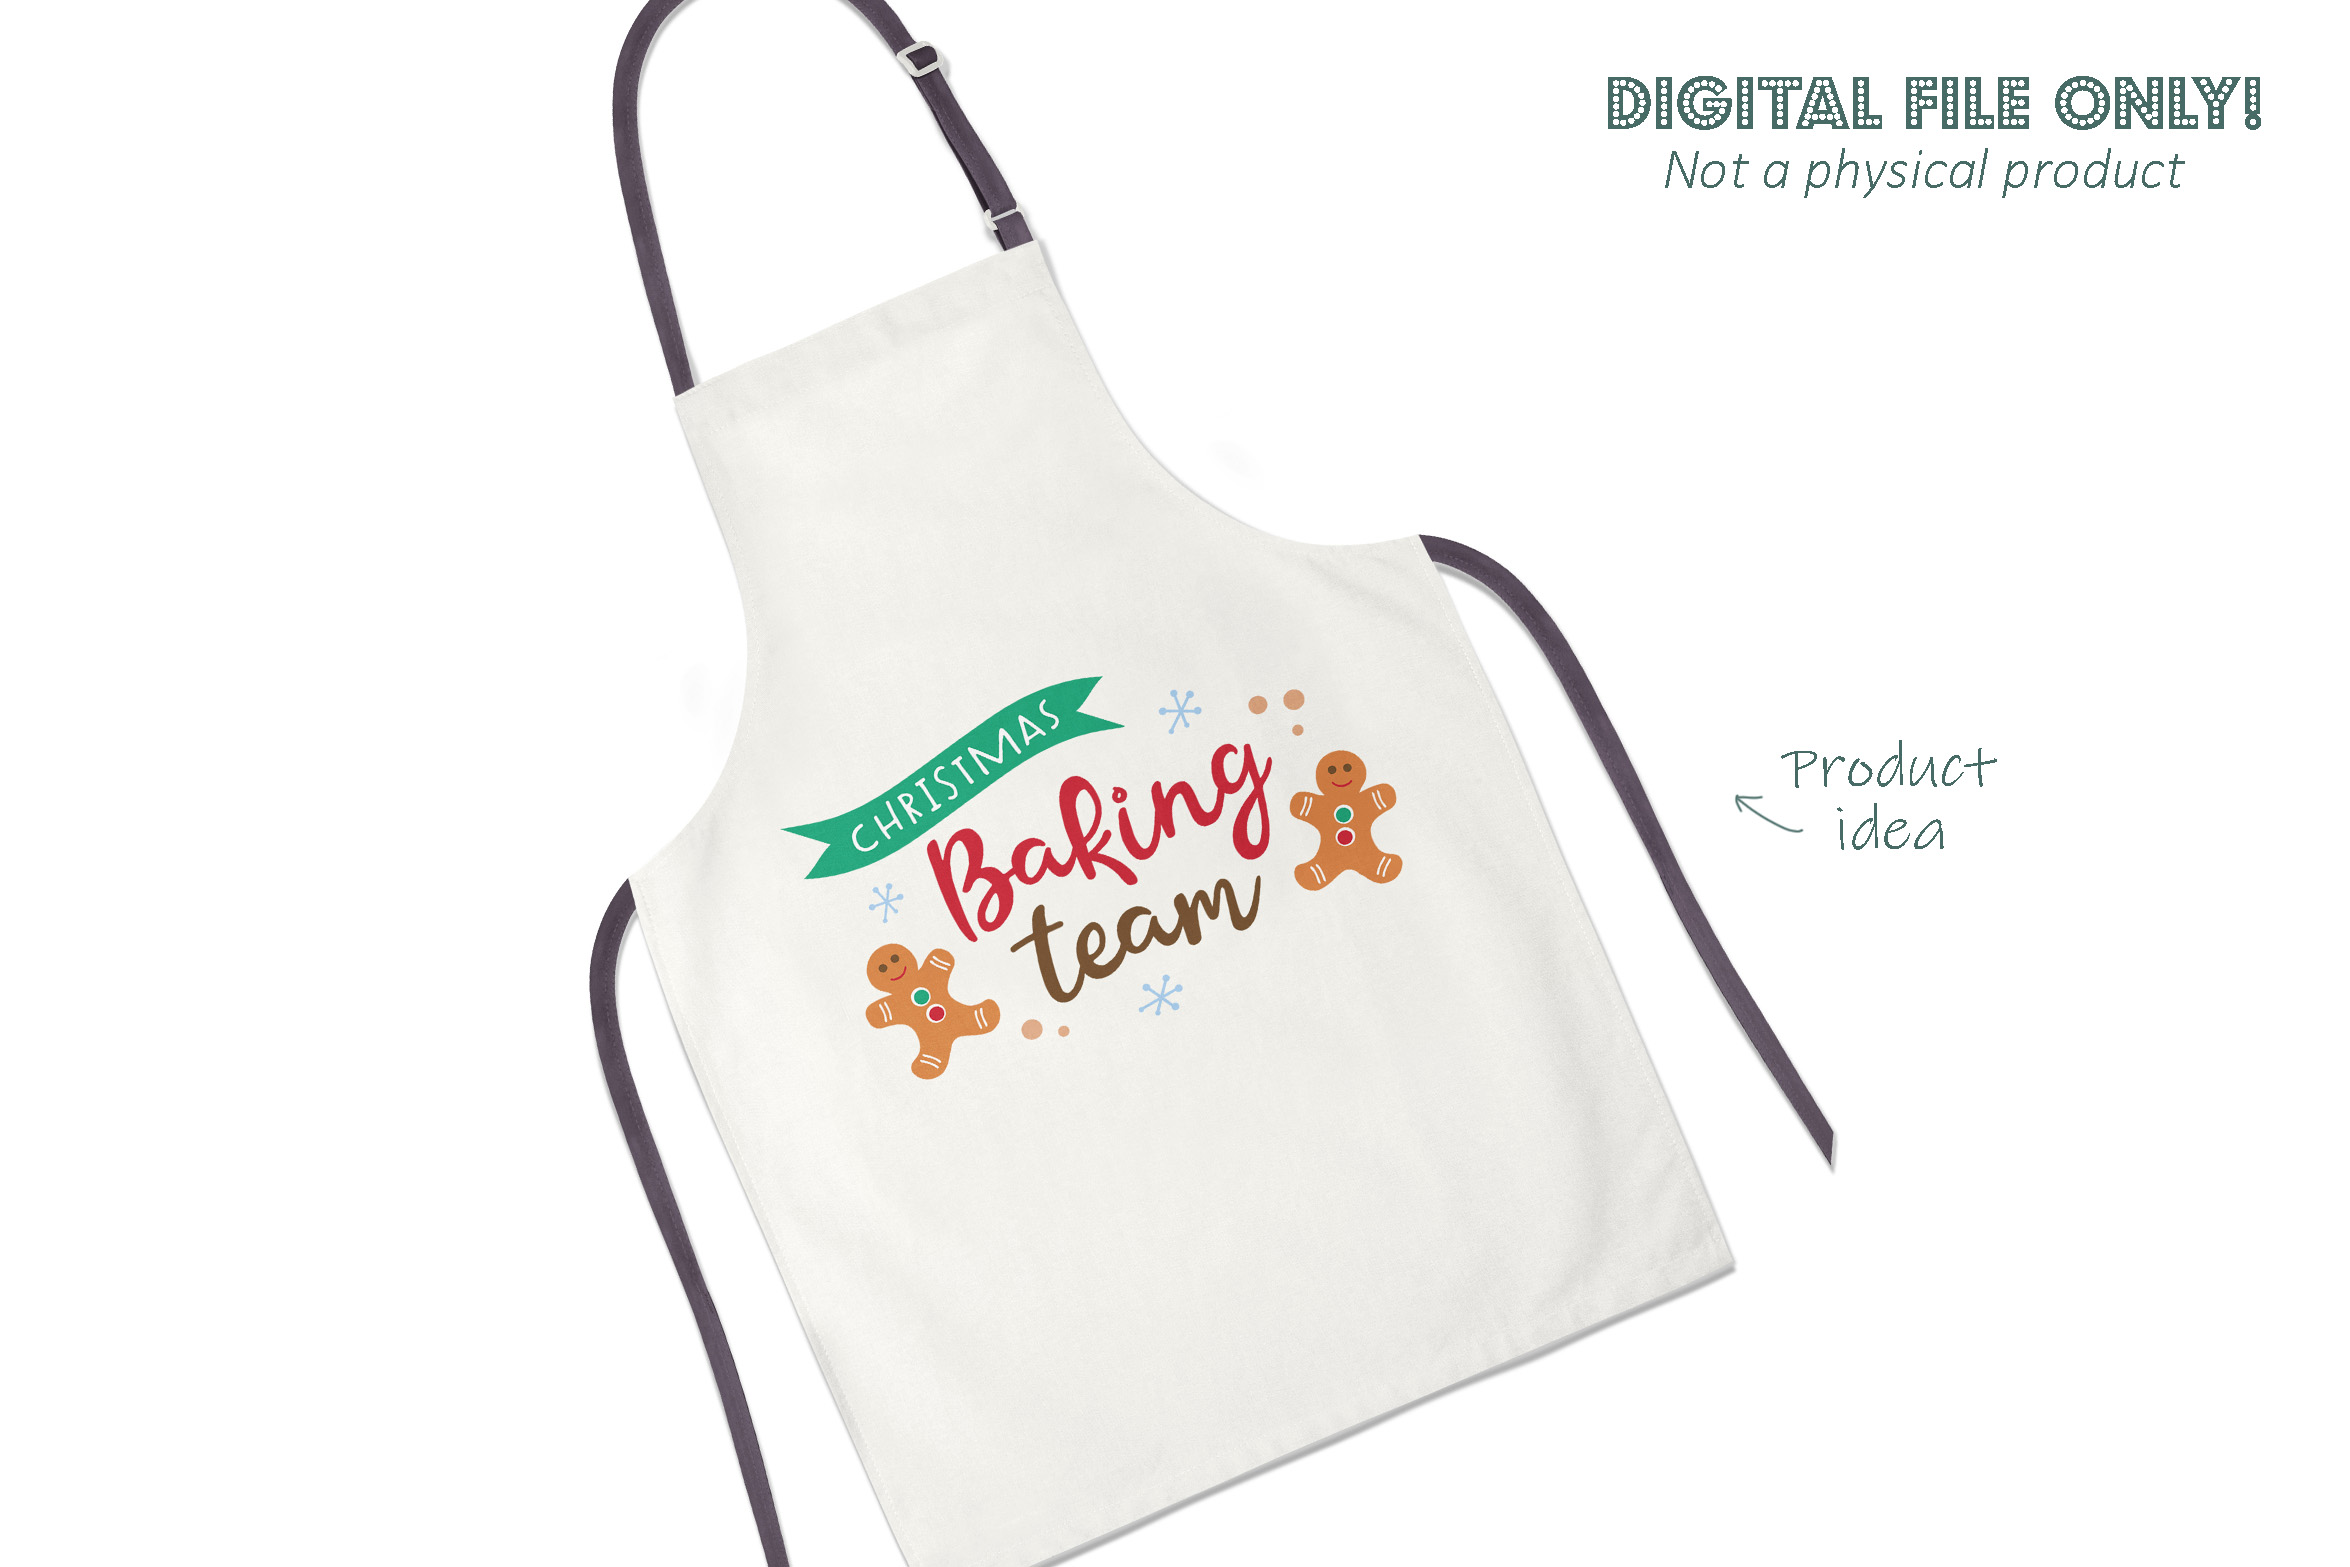 Christmas baking team SVG file example image 2